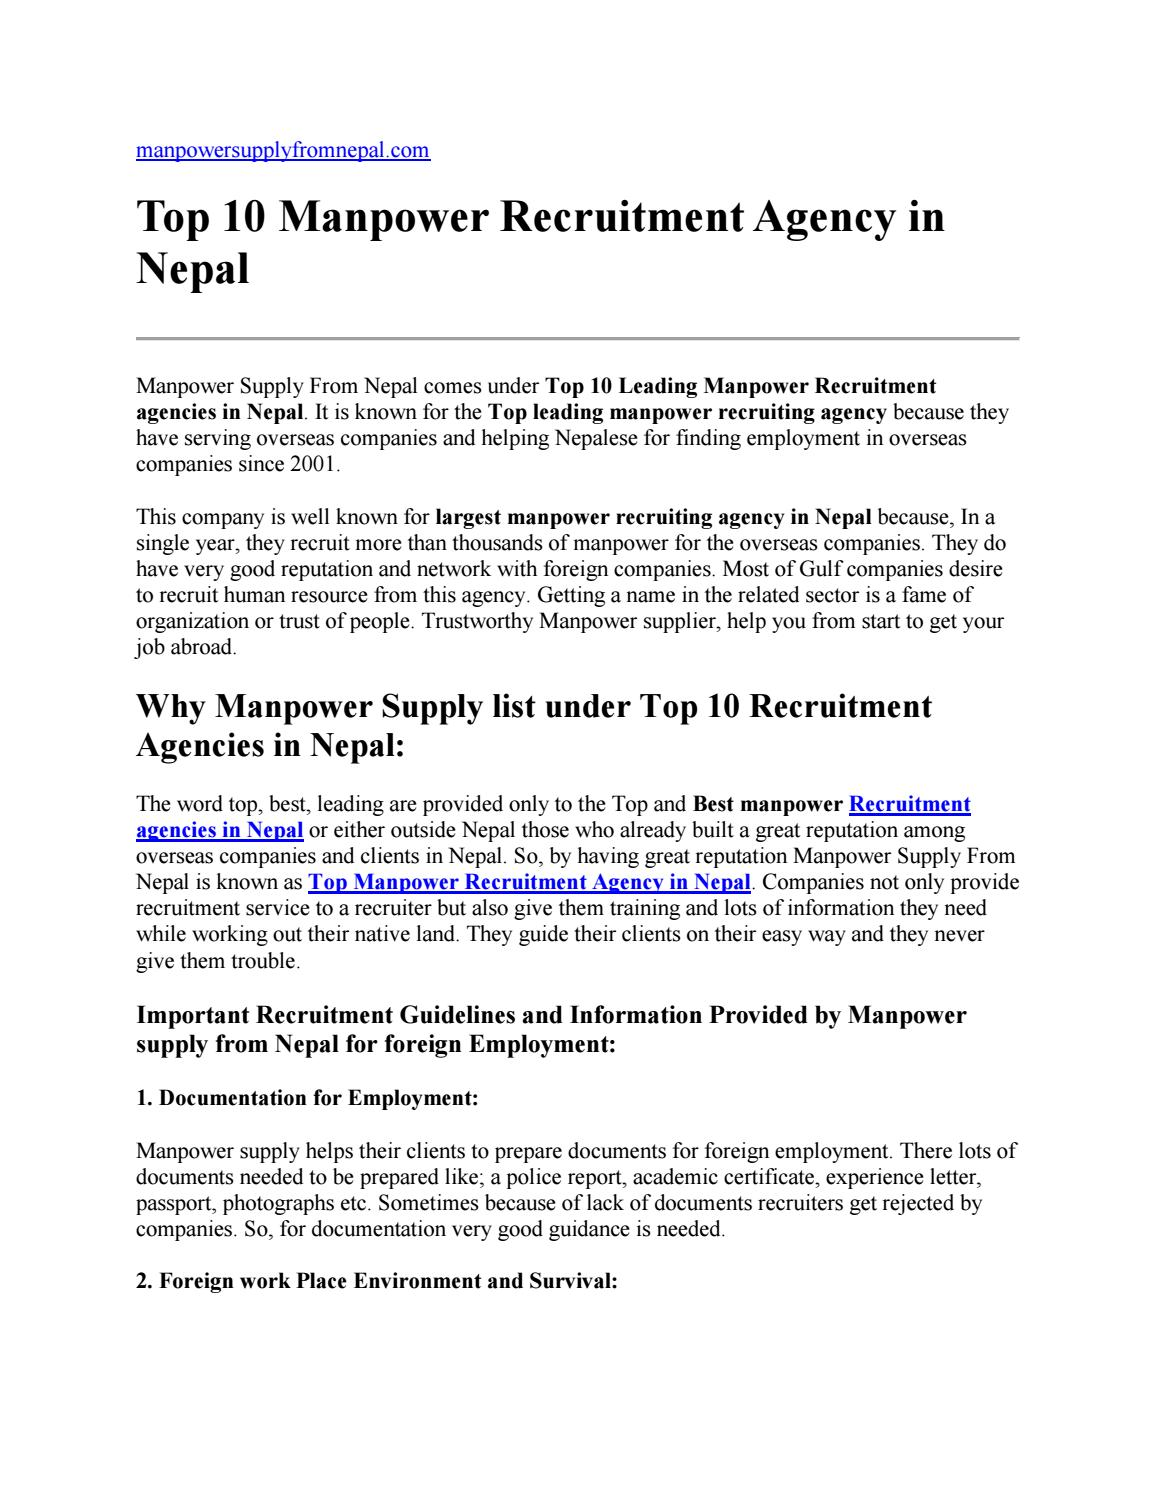 Top 10 Manpower Recruitment Agency in Nepal by Manpower Supply From